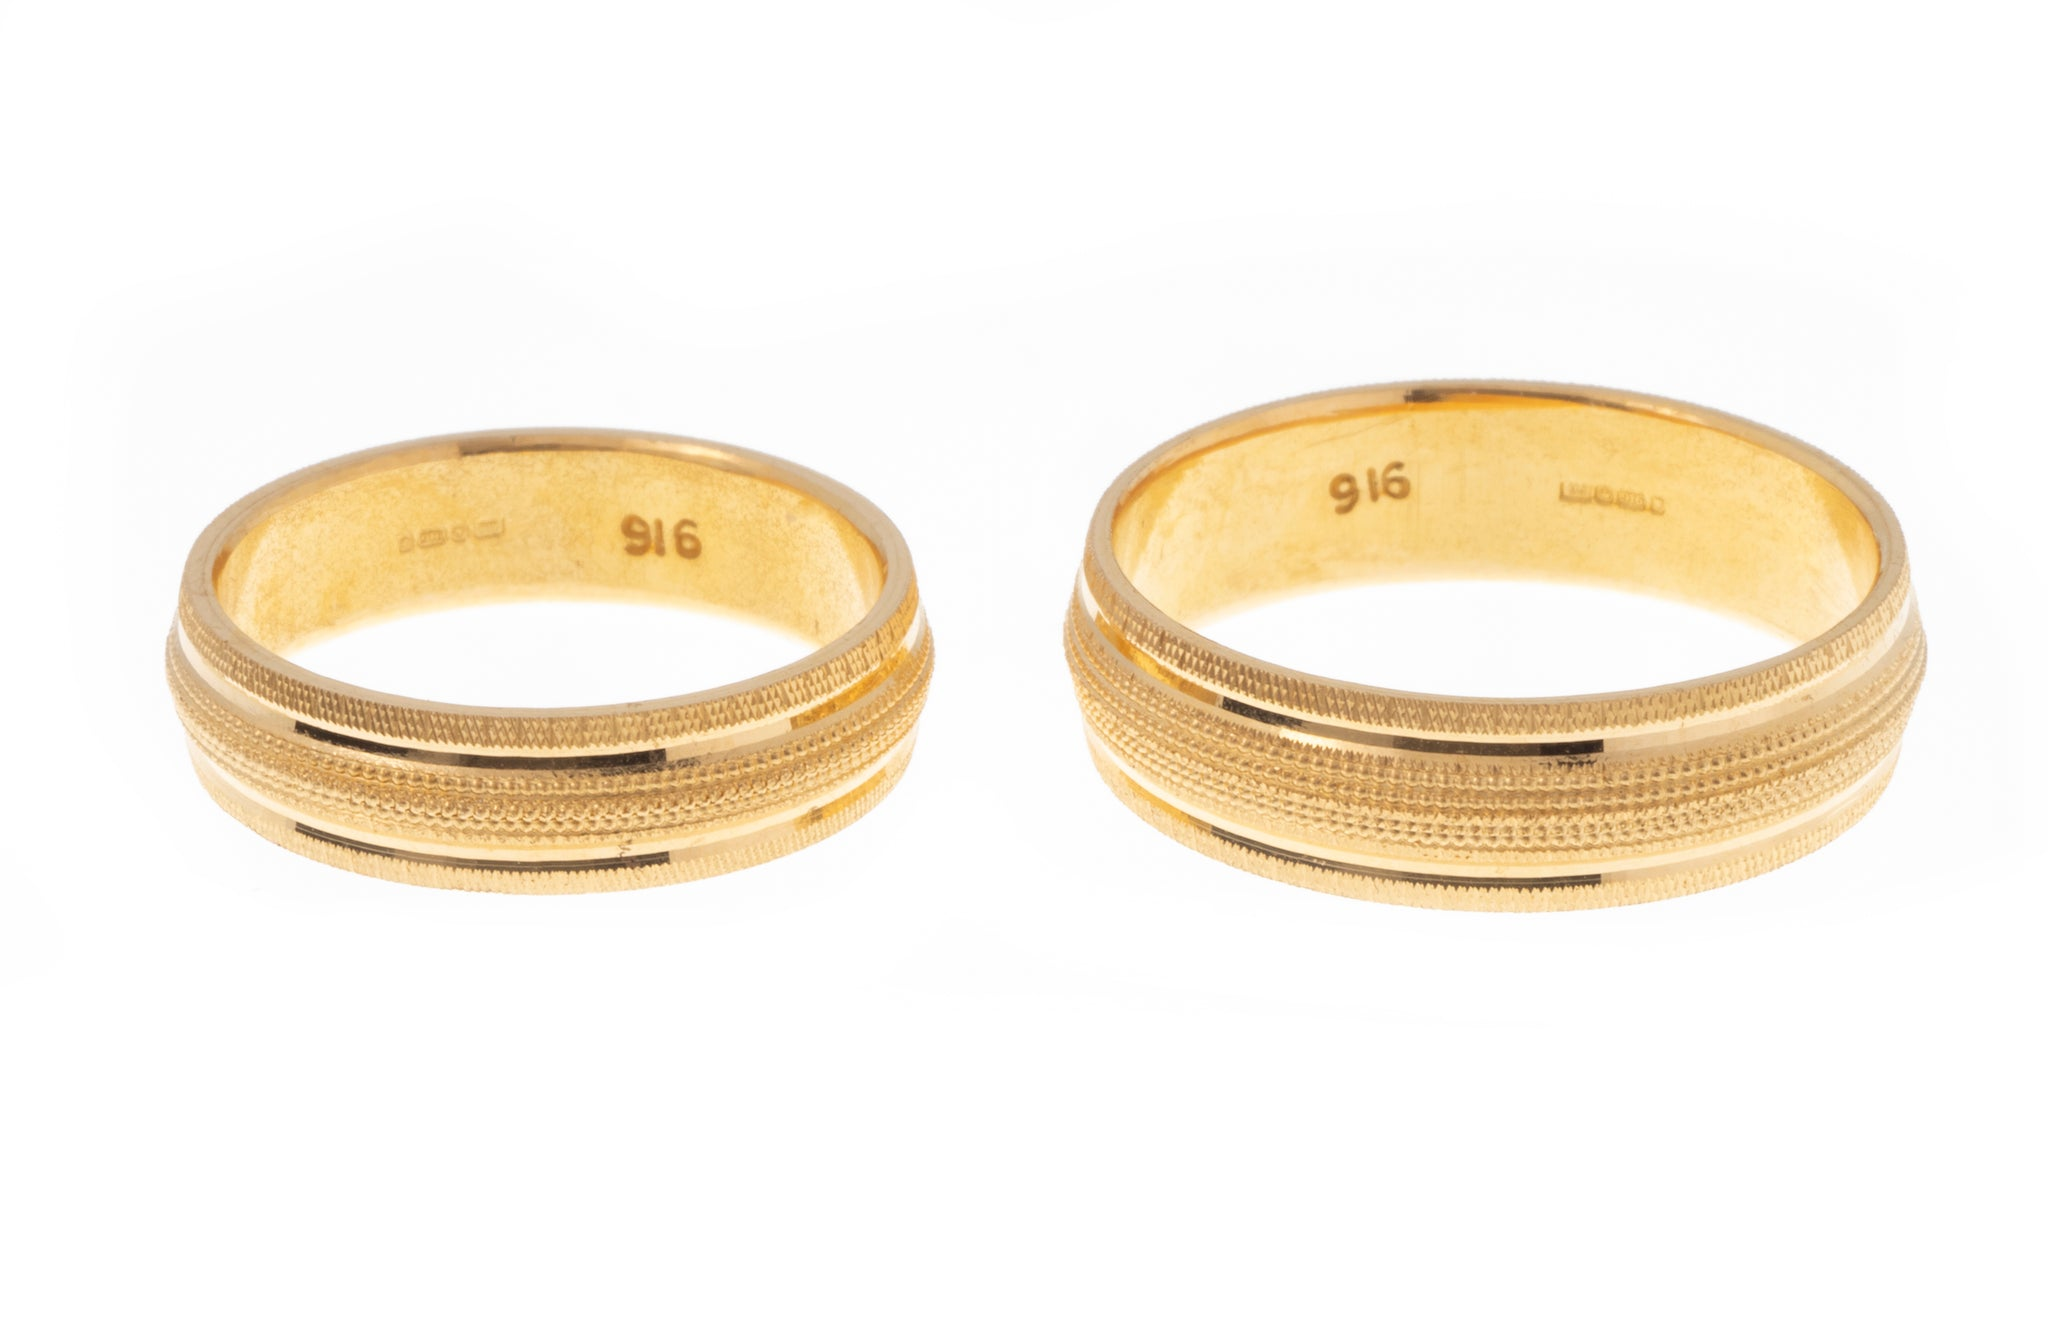 22ct Gold Wedding Band with Diamond Cut Design LR/GR-7359